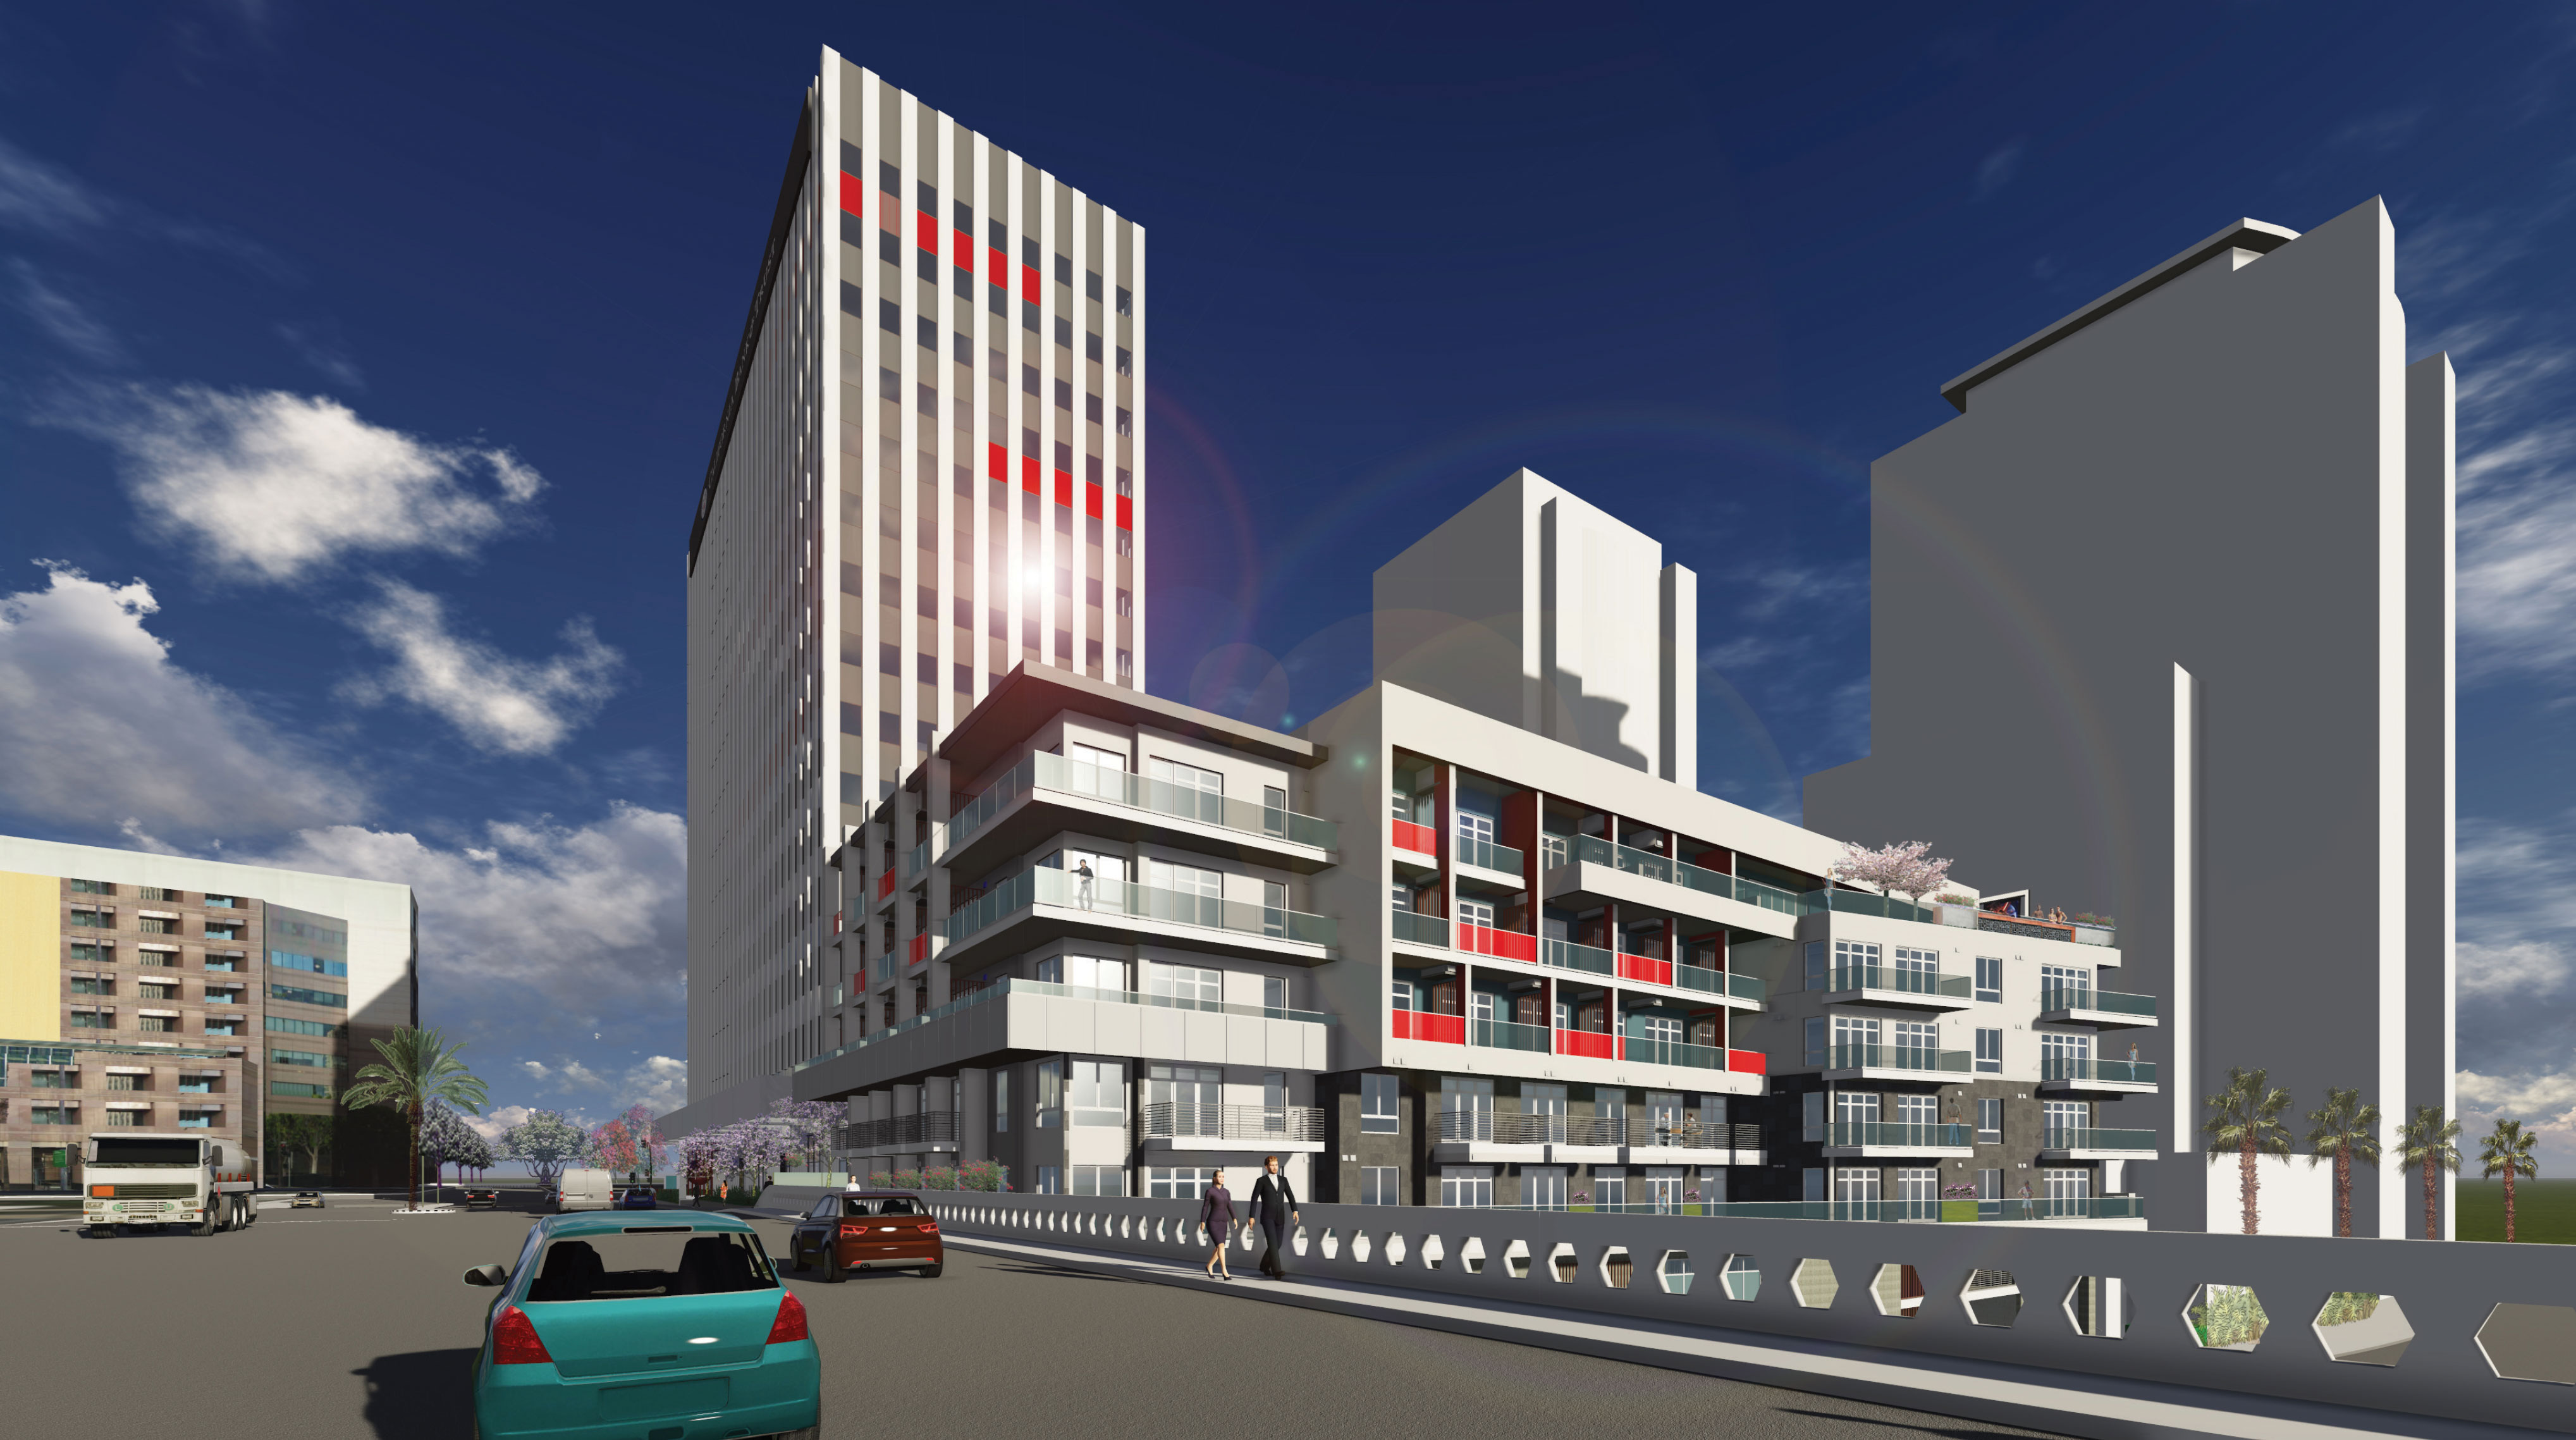 442 W. Ocean Blvd. Renderings